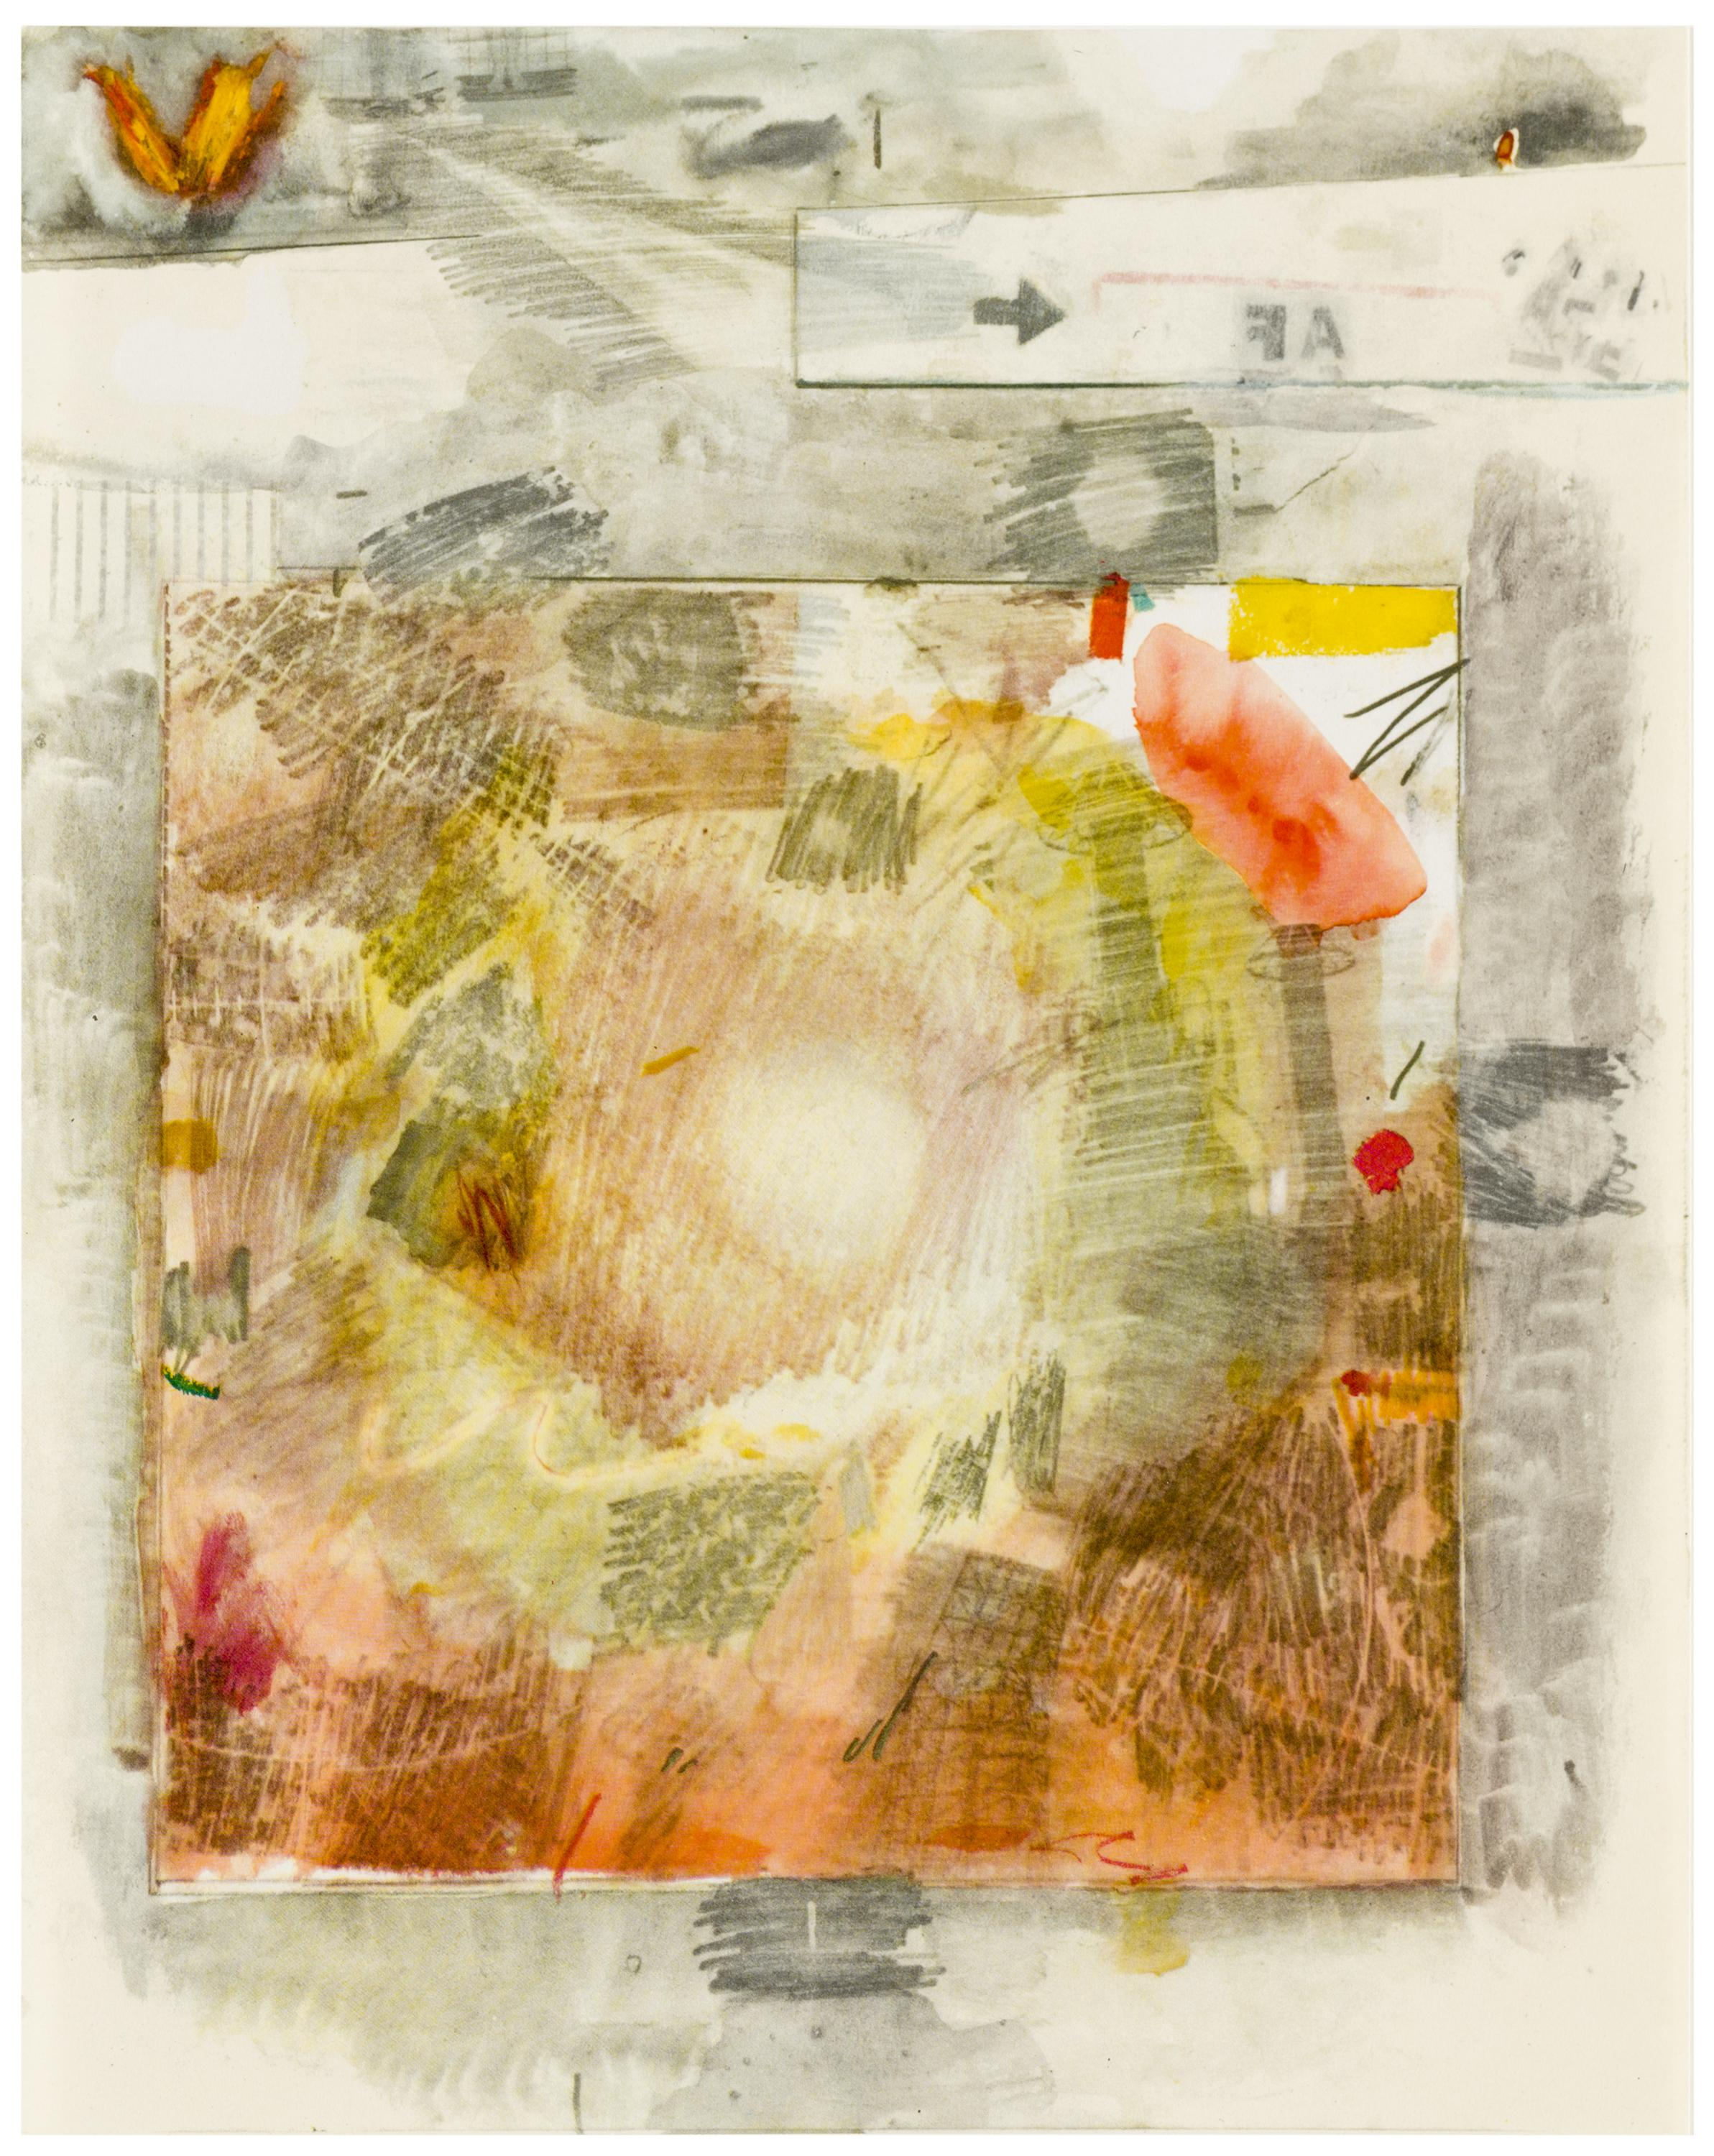 A square of warm, earthy scribbles of color is mounted on a background of gray similar smudges and scribbles.